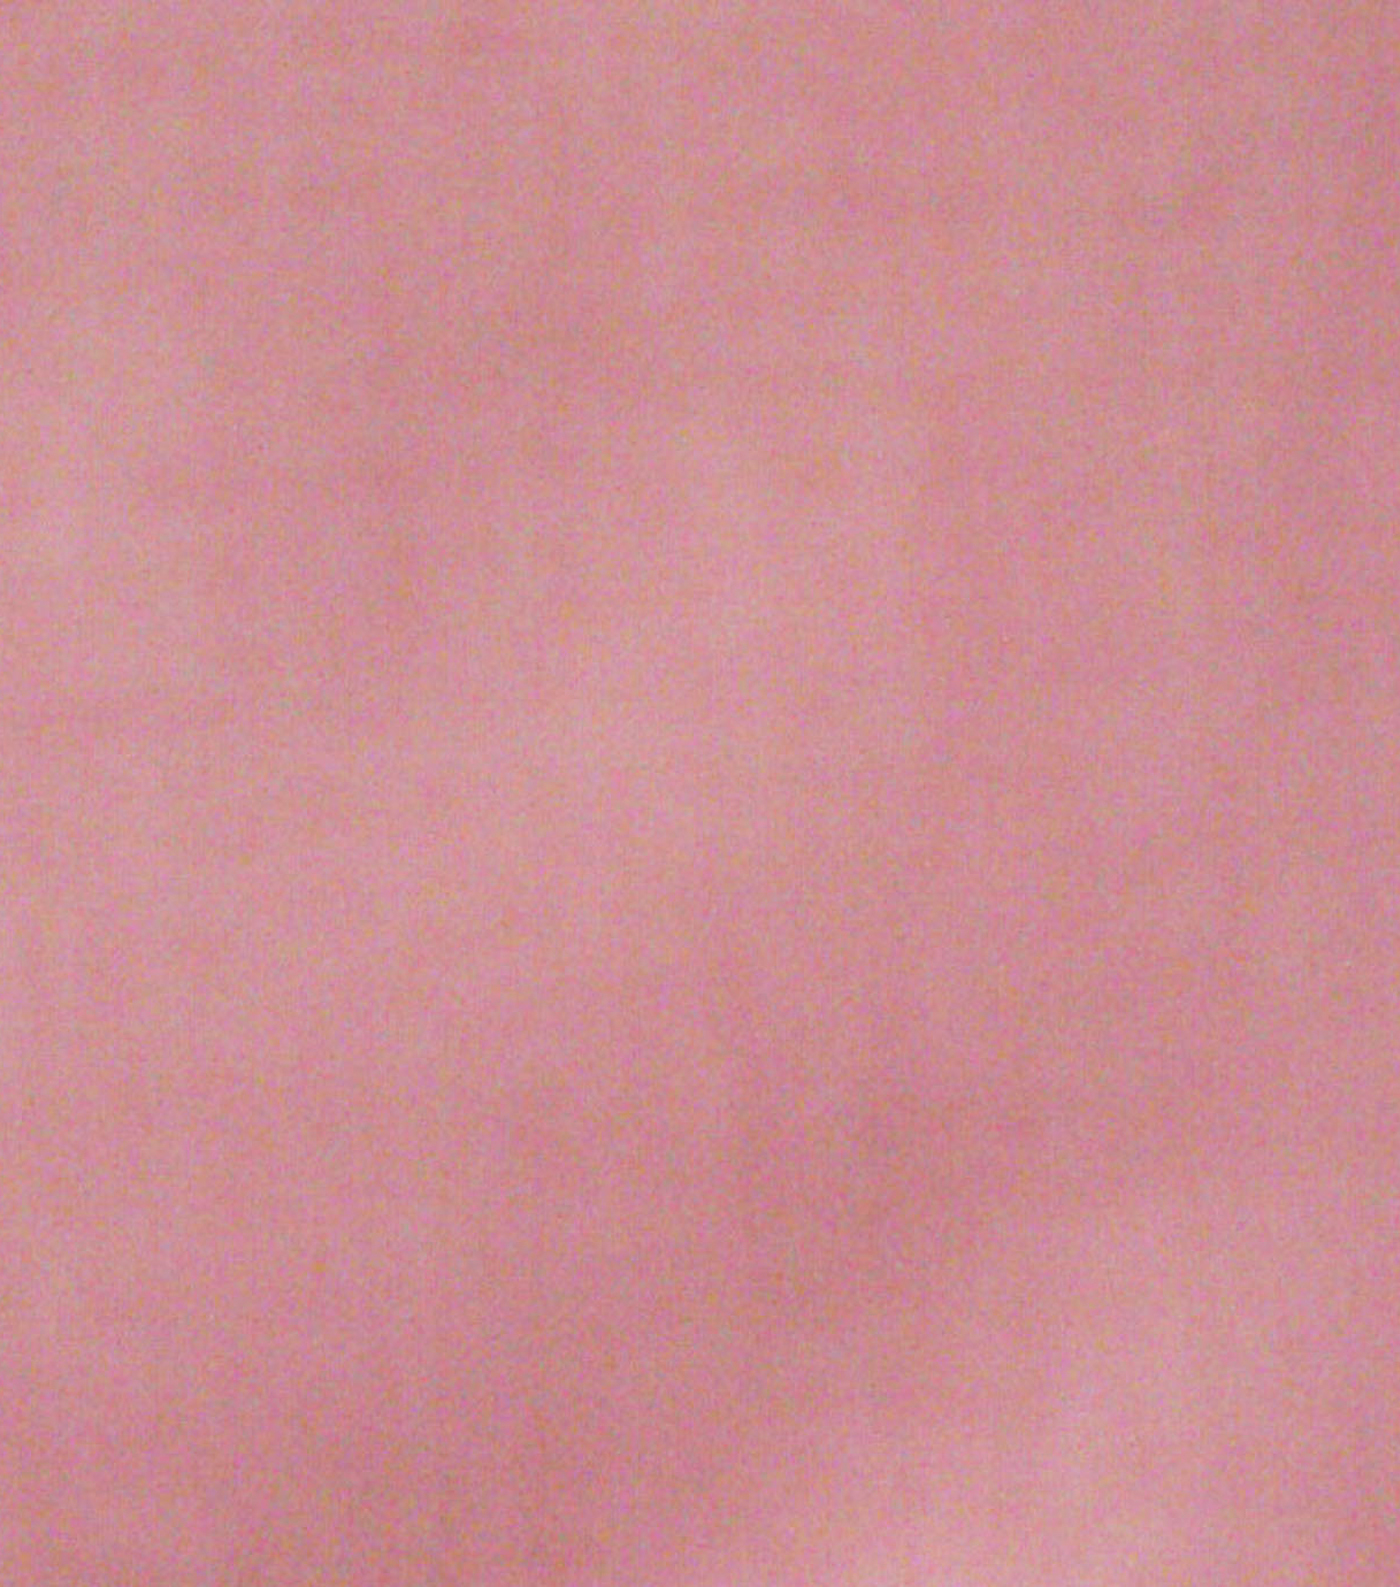 Fabric-Quarters Cotton Fabric-Solids Light Pink